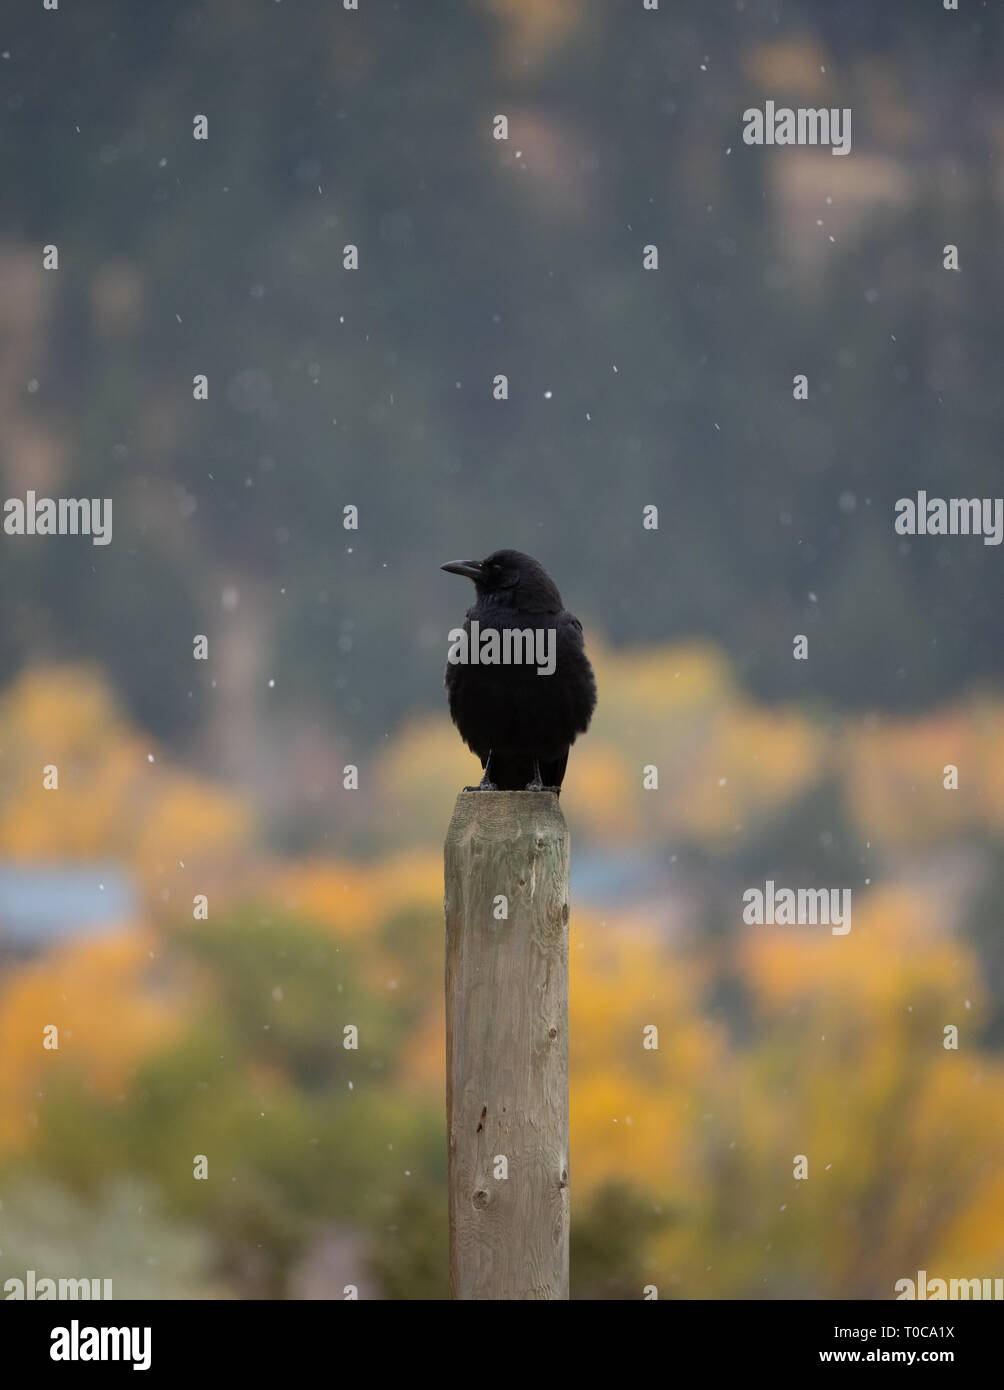 A crow sitting on a wooden fence post looking to its right. Snowflakes are falling around the bird. Shallow depth of field. - Stock Image